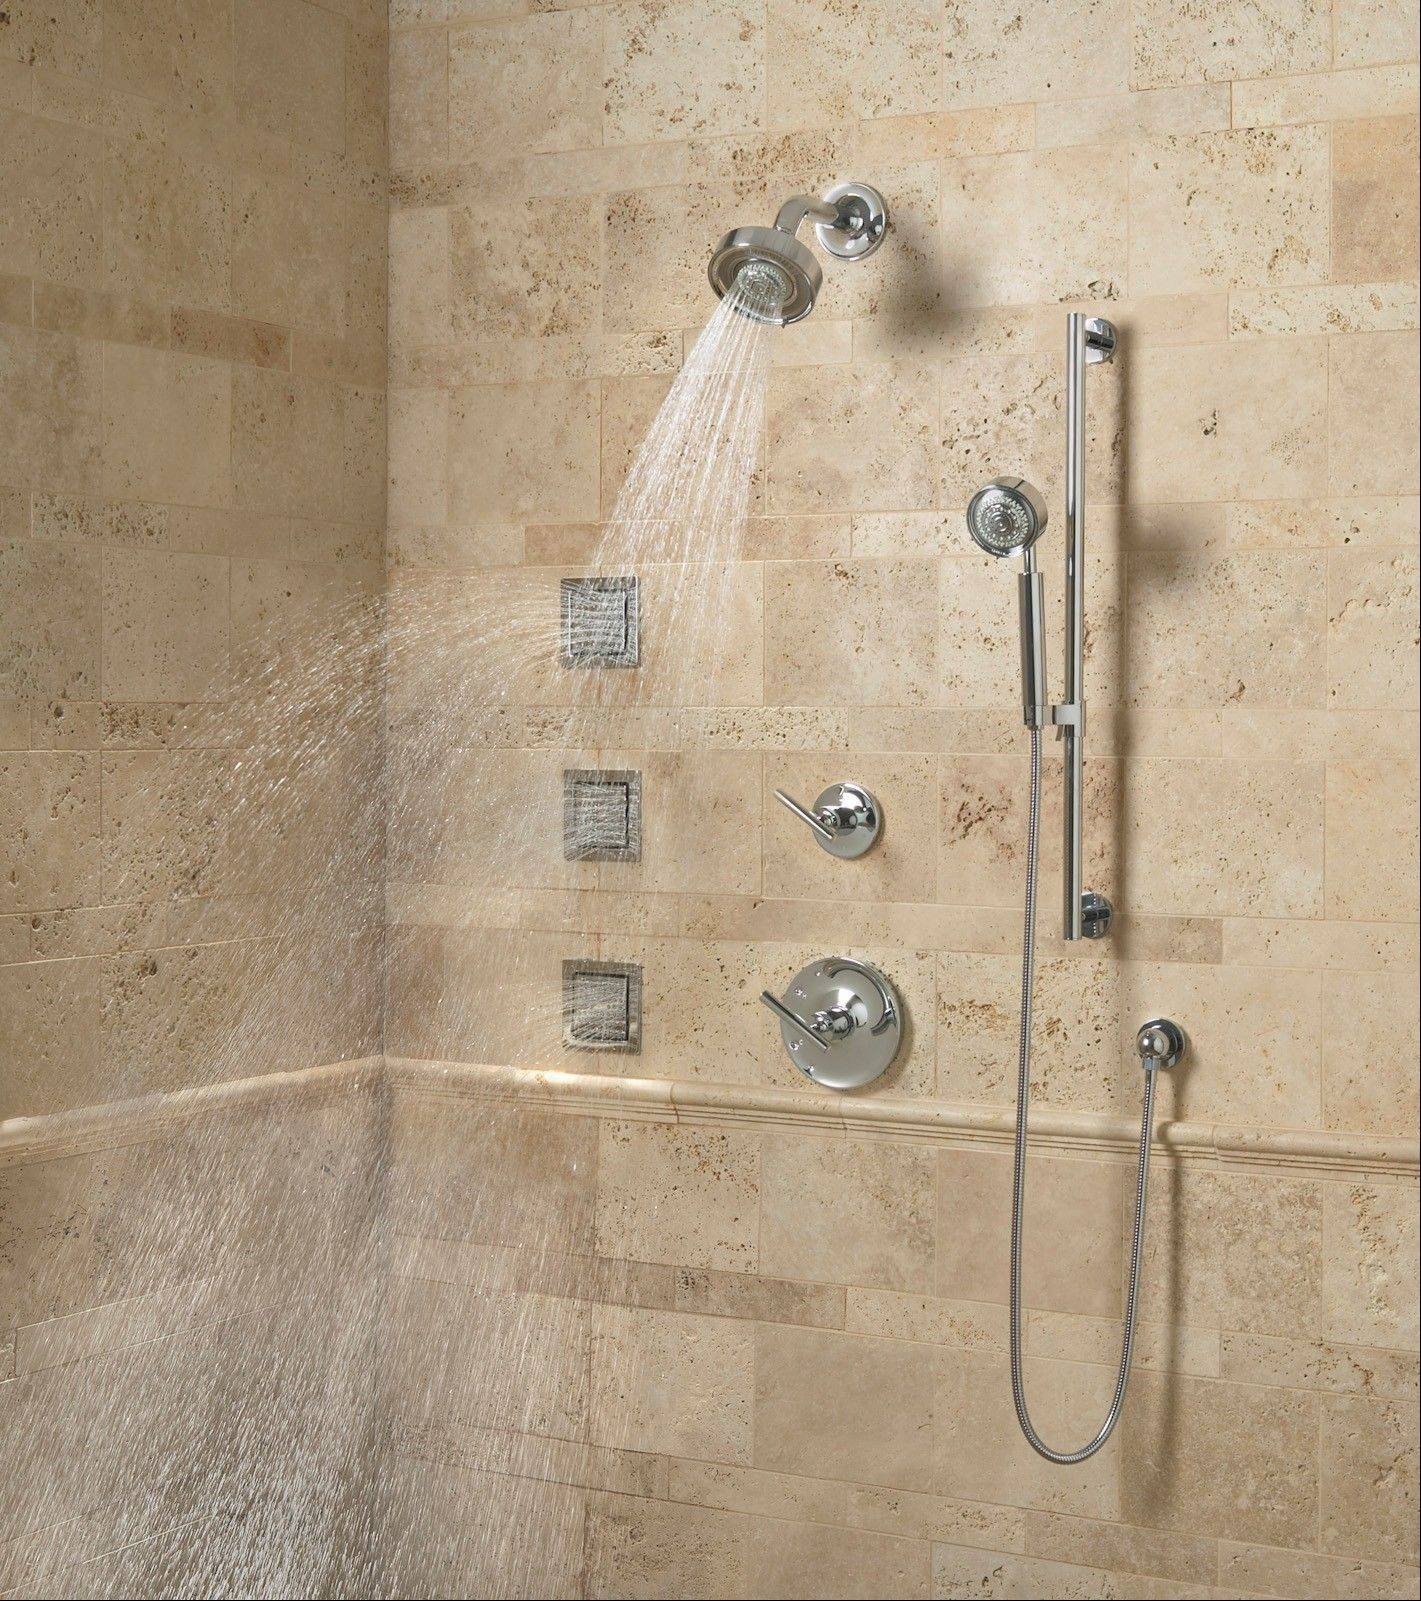 Custom shower stalls can include multiple showerheads and body sprays, so not only can the construction of the stall be a little tricky, the plumbing can be complicated as well.